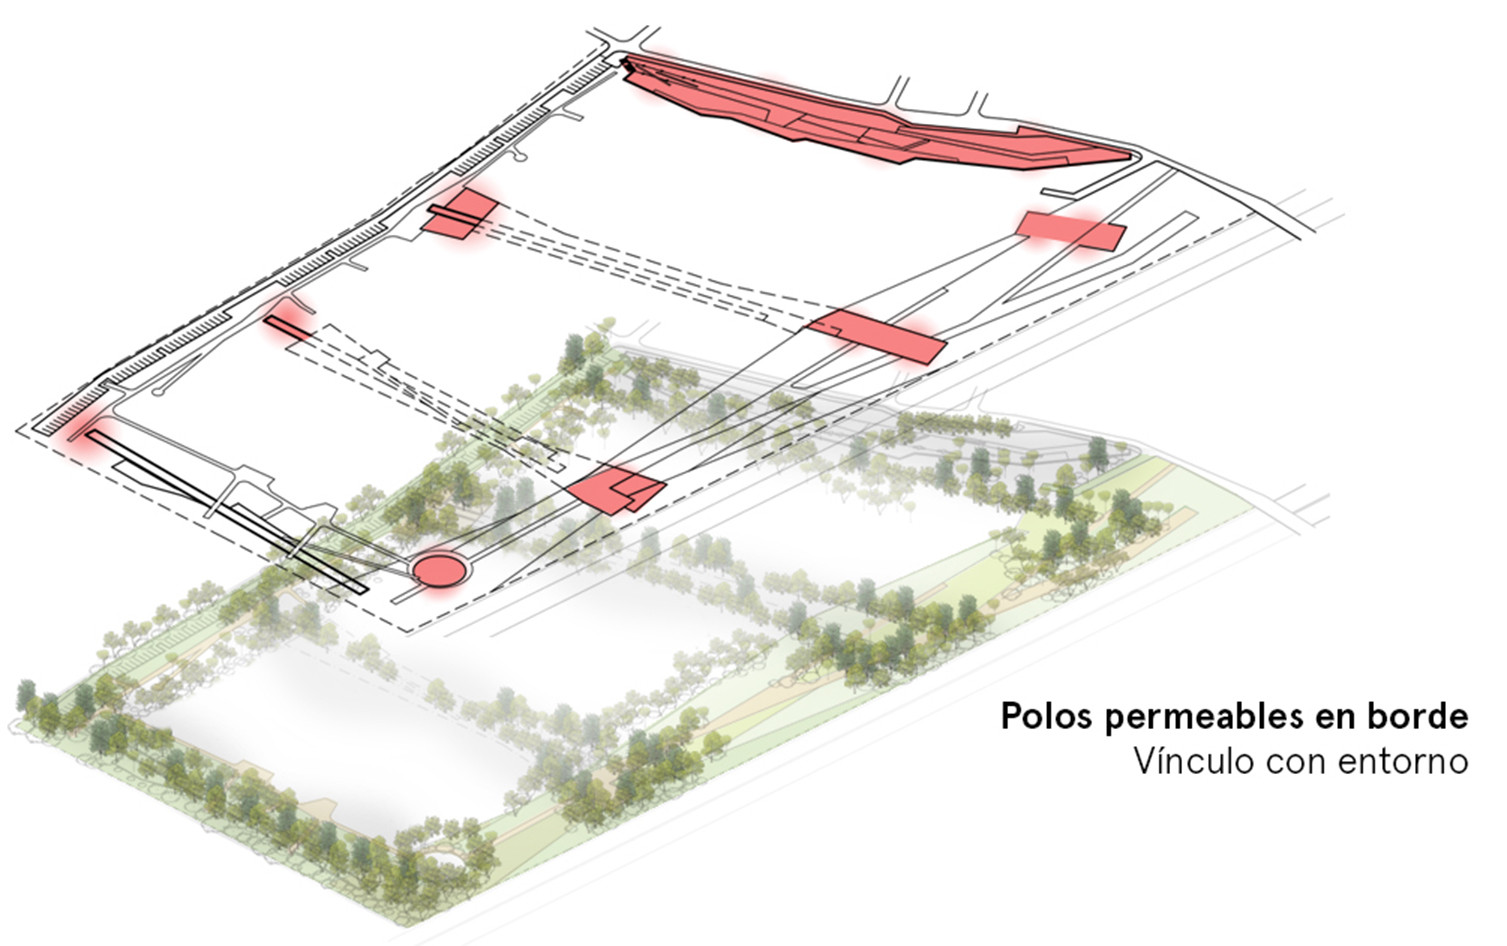 Polos permeables. Image Courtesy of Equipo Primer Lugar